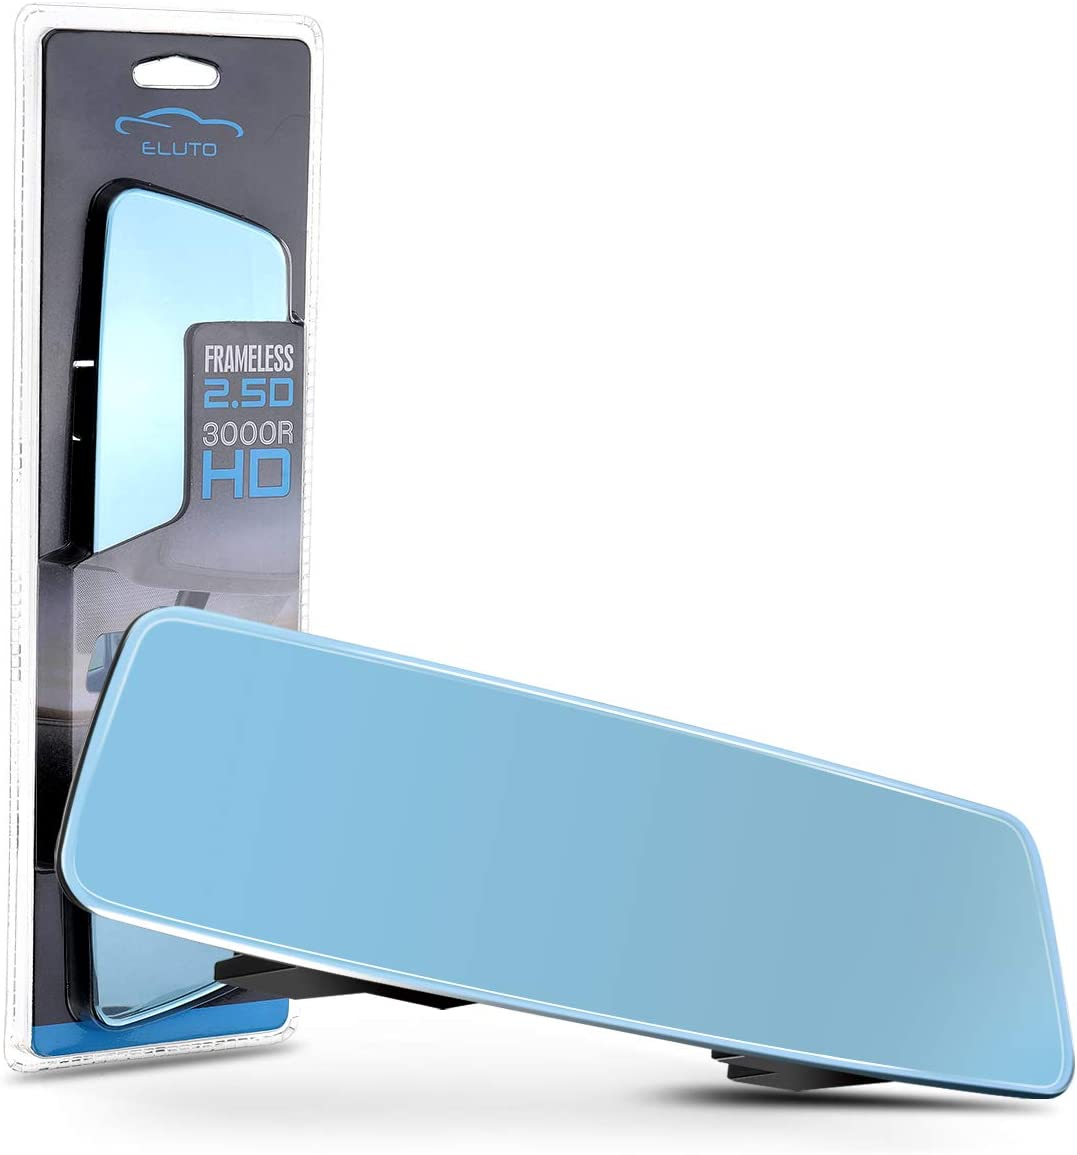 "ELUTO Rear View Mirror Wide Angle Anti Glare Rearview Mirror Rimless Panoramic Curve Convex HD Blue Tints Rear View Mirror Clip On Original Mirror for Car SUV Van Truck 11""(280 mm)"